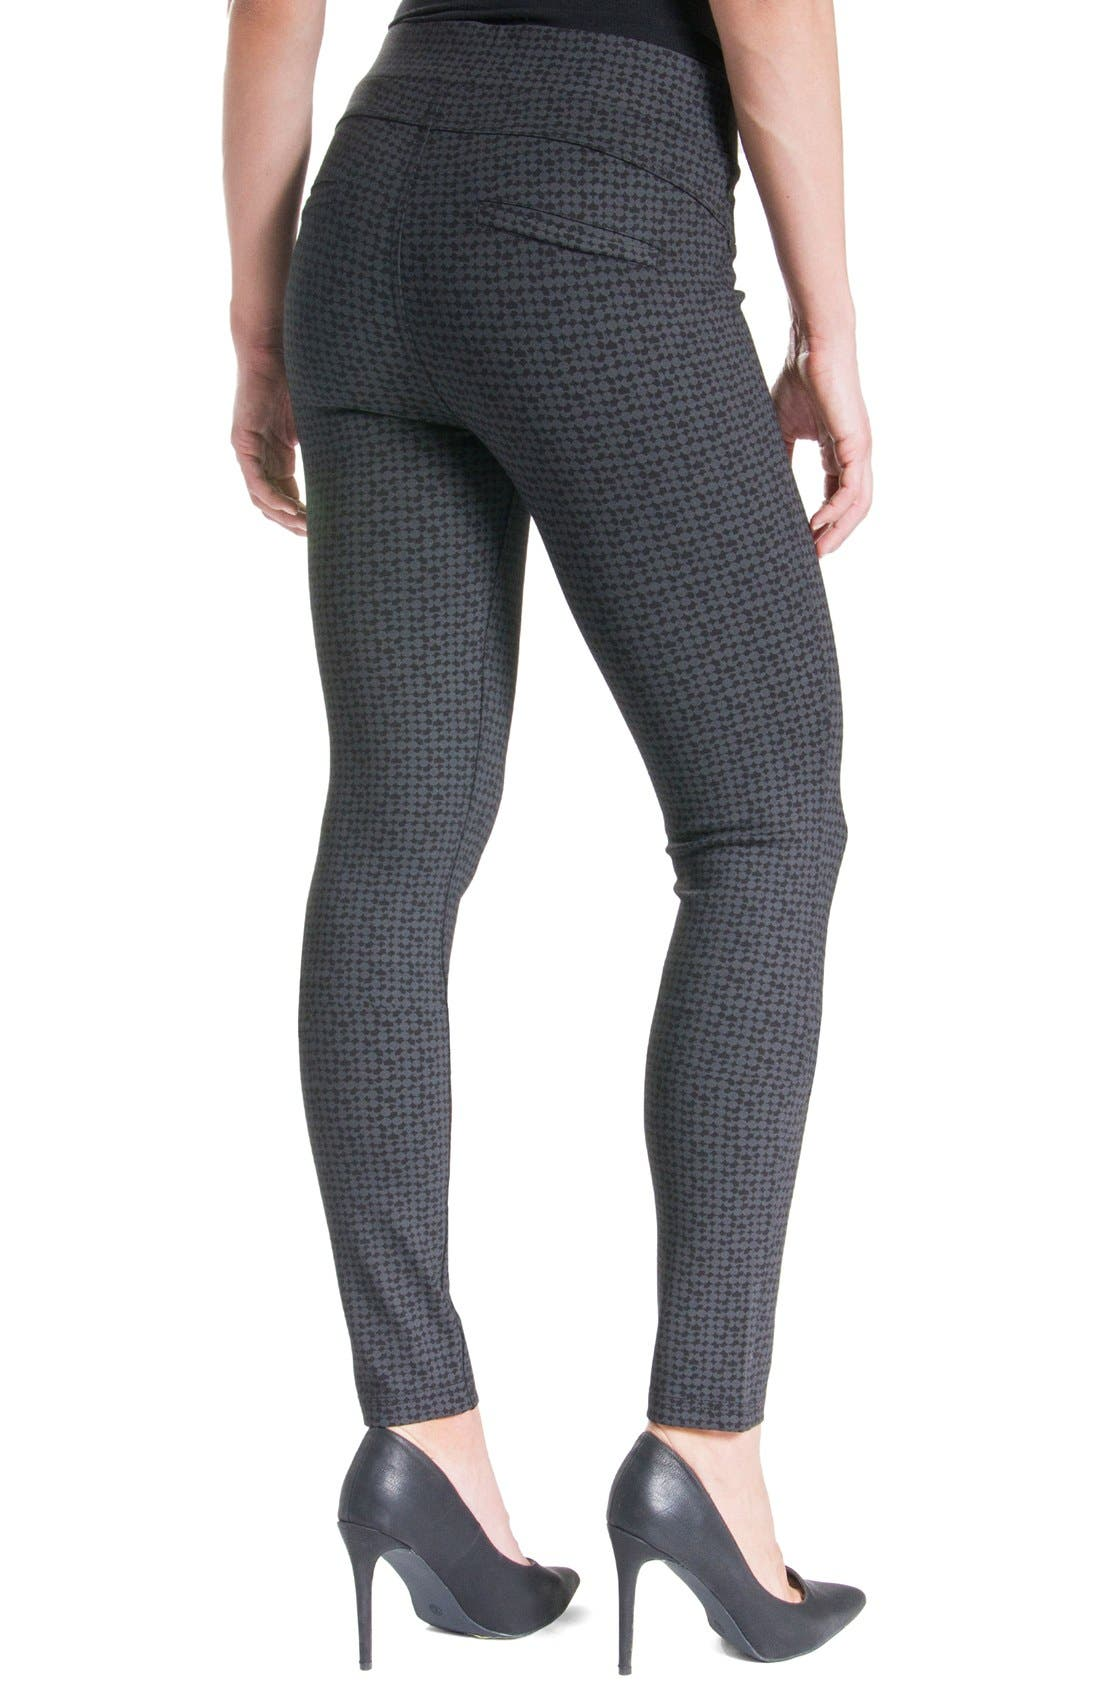 Quinn Leggings,                             Alternate thumbnail 3, color,                             022